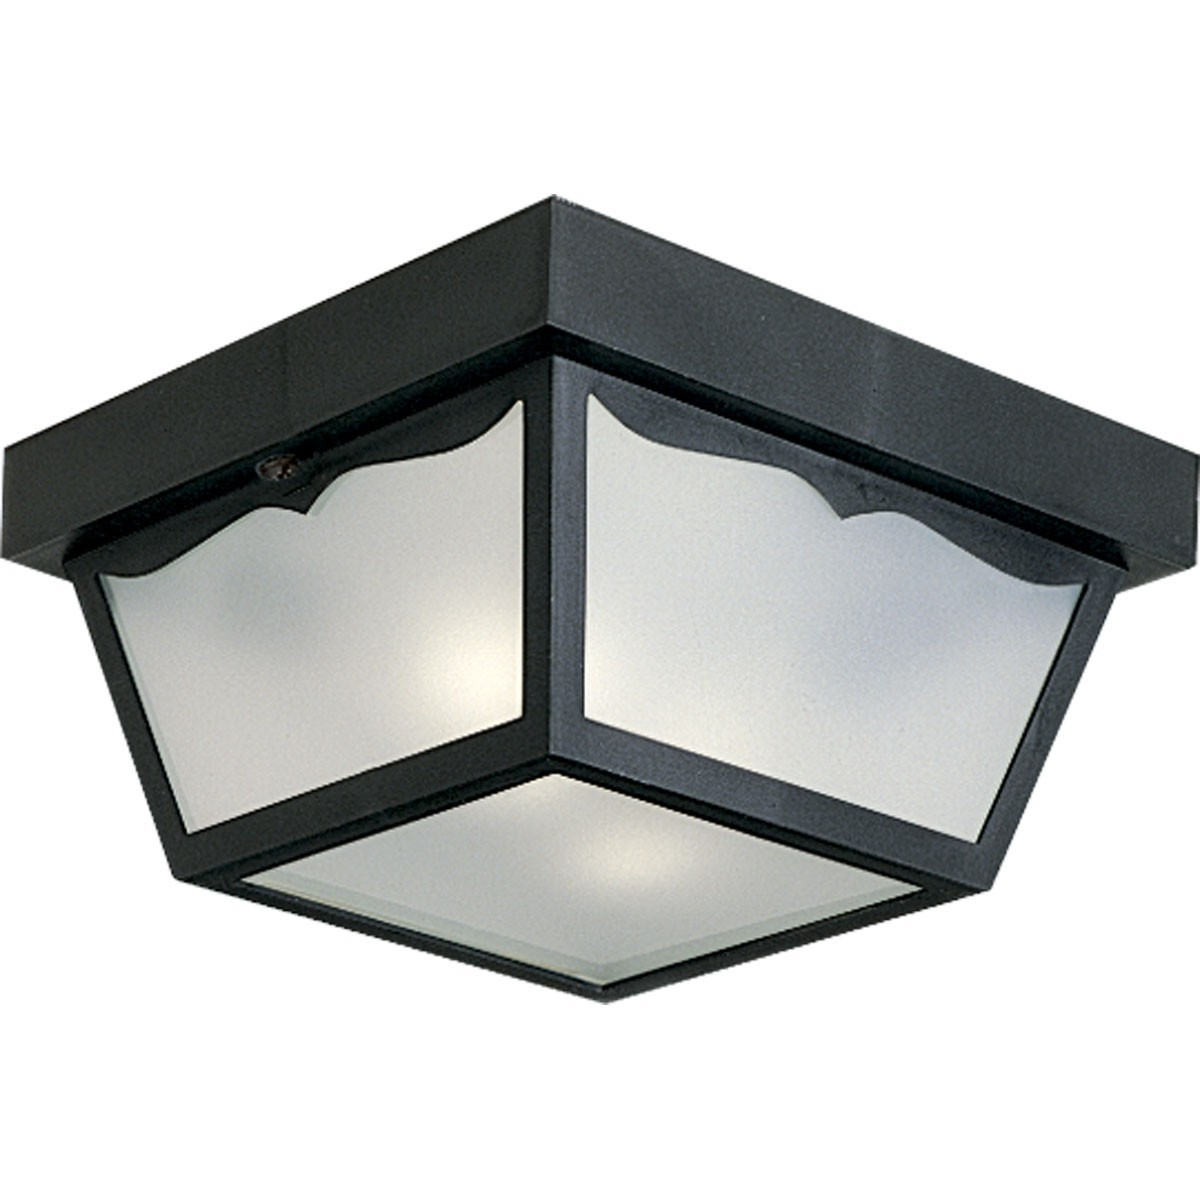 60w Outdoor Flush Mount Non Metallic Ceiling Light – Progress Inside 2018 Unique Outdoor Ceiling Lights (View 9 of 20)